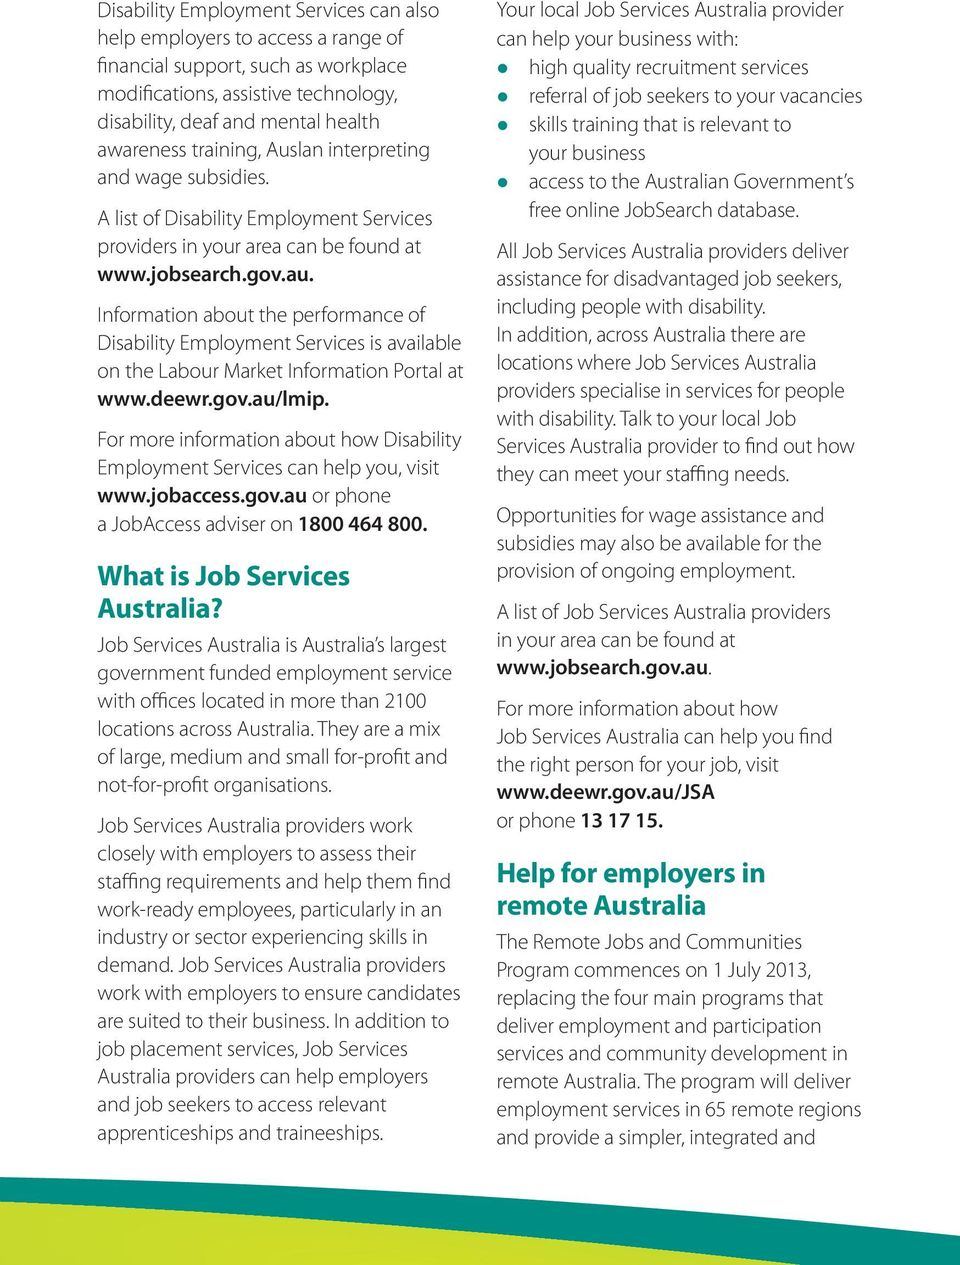 Information about the performance of Disability Employment Services is available on the Labour Market Information Portal at www.deewr.gov.au/lmip.